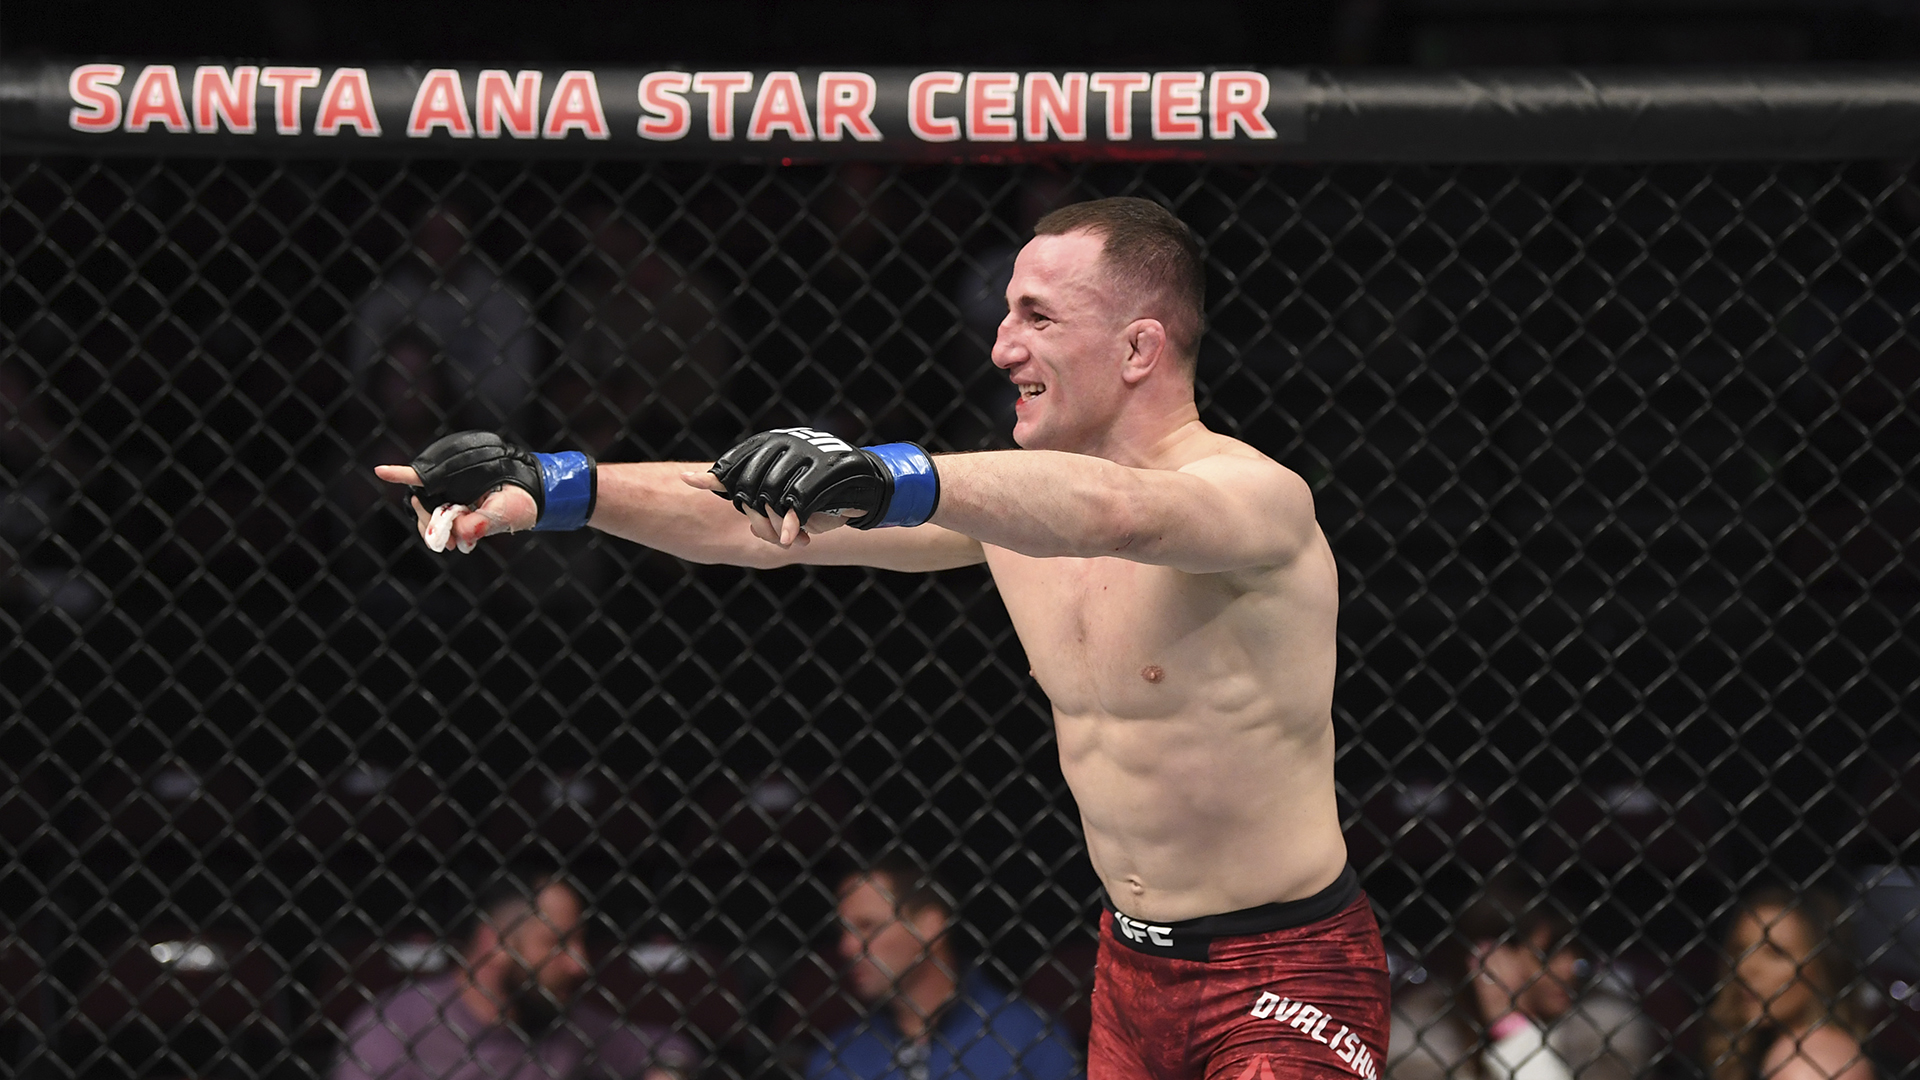 Merab Dvalishvili of Georgia reacts after the conclusion of his bantamweight bout against Casey Kenney during the UFC Fight Night event at Santa Ana Star Center on February 15, 2020 in Rio Rancho, New Mexico. (Photo by Josh Hedges/Zuffa LLC)